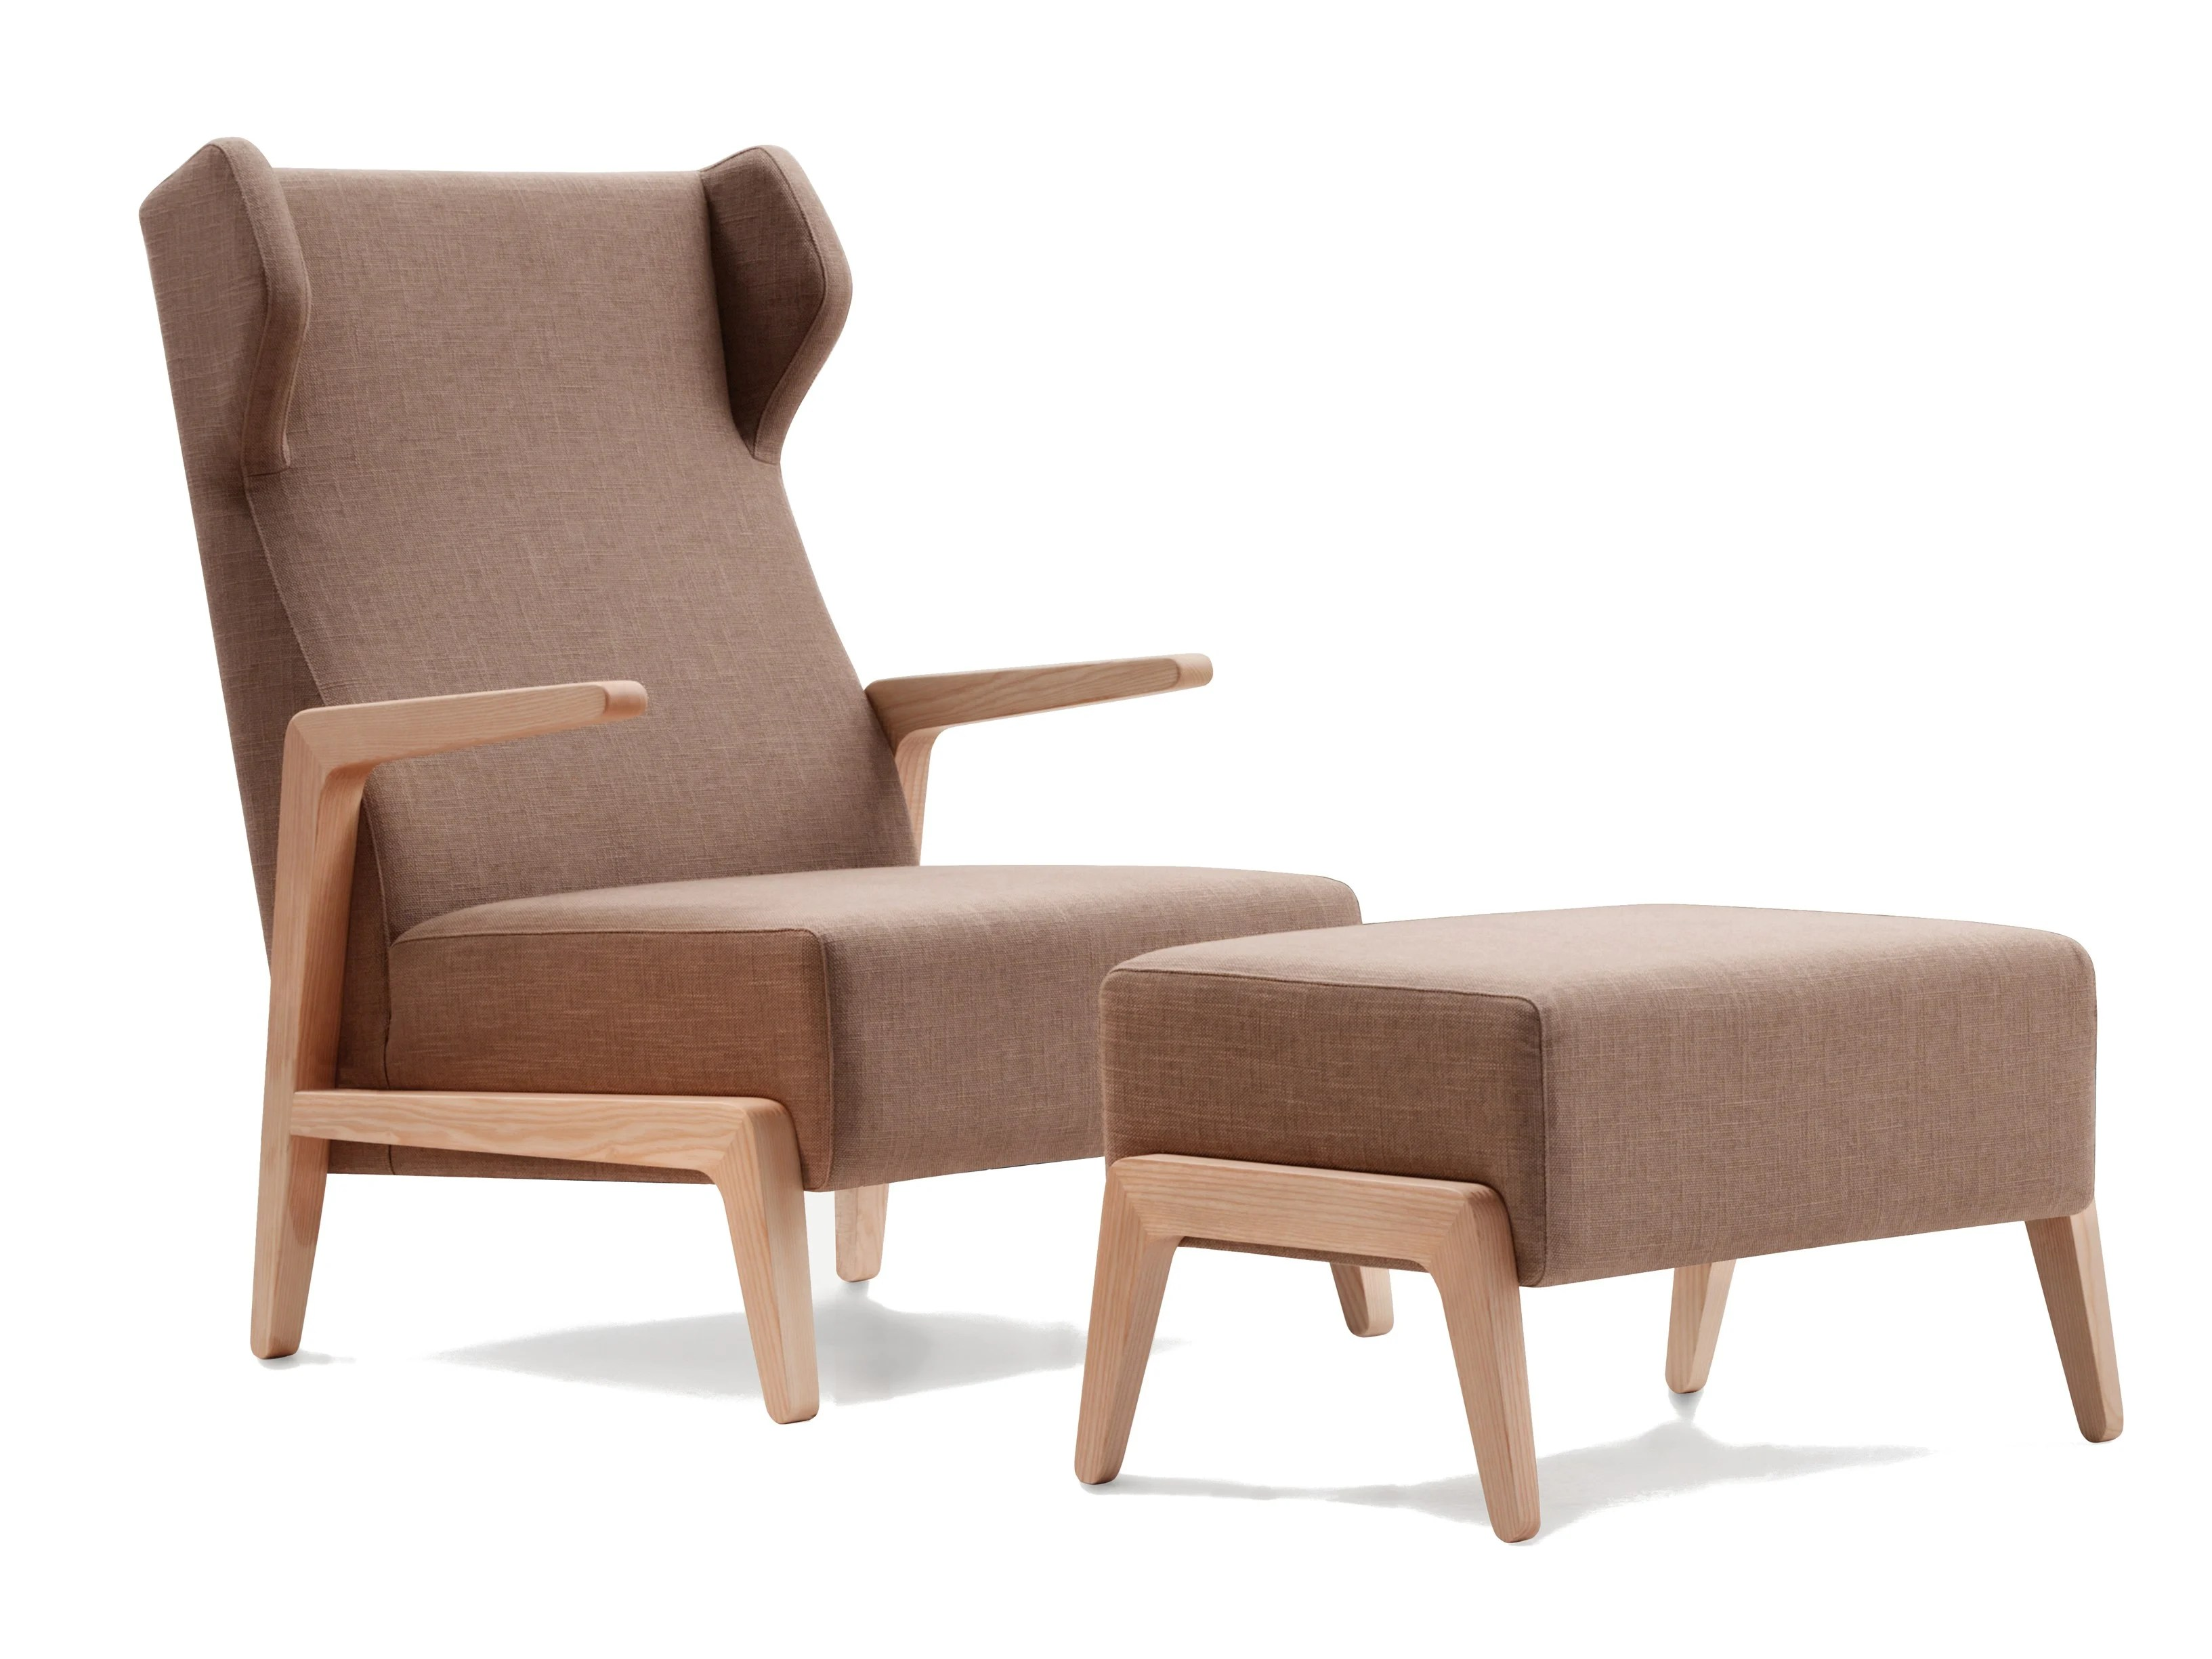 Chill Sessel Boomerang Chill Sessel Mit Kopfstütze By Sancal Design